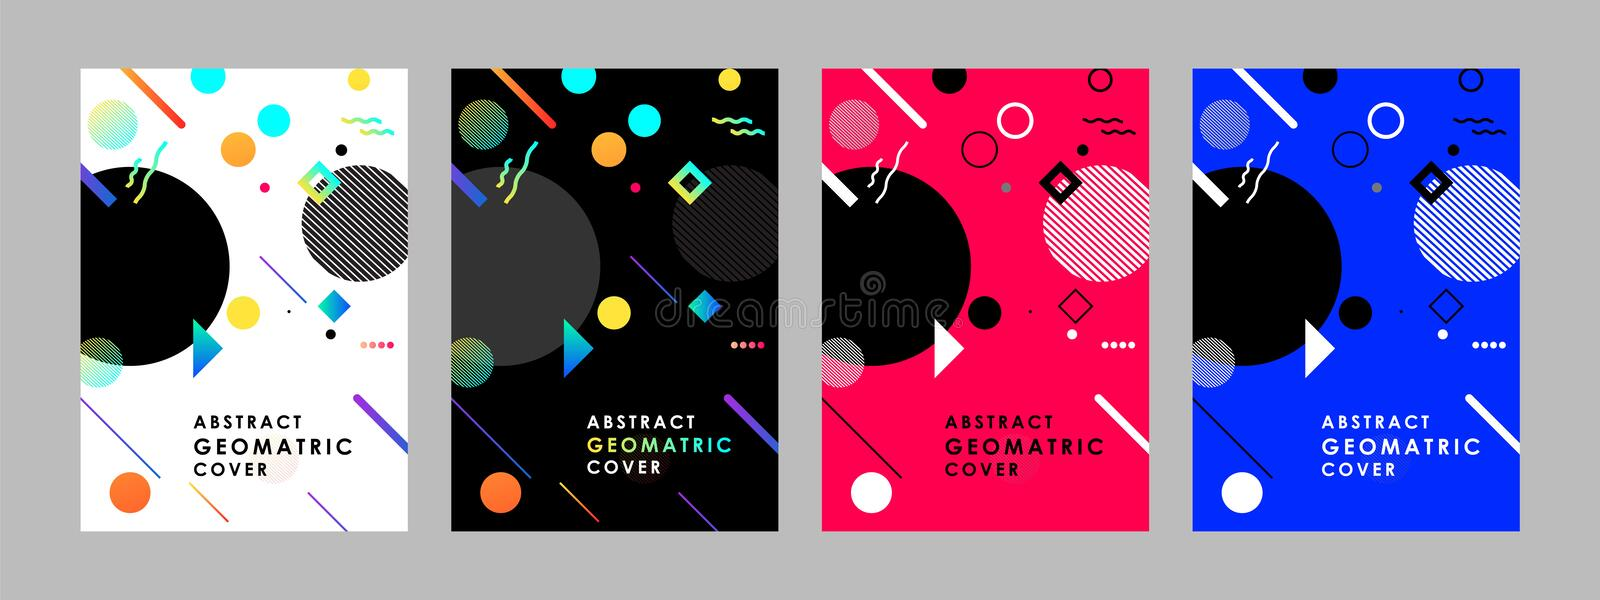 Covers modern abstract design templates set. Minimal geometric shapes compositions for flyer, banner, brochure and poster. Eps10 v. Ector illustration. - Vector stock illustration